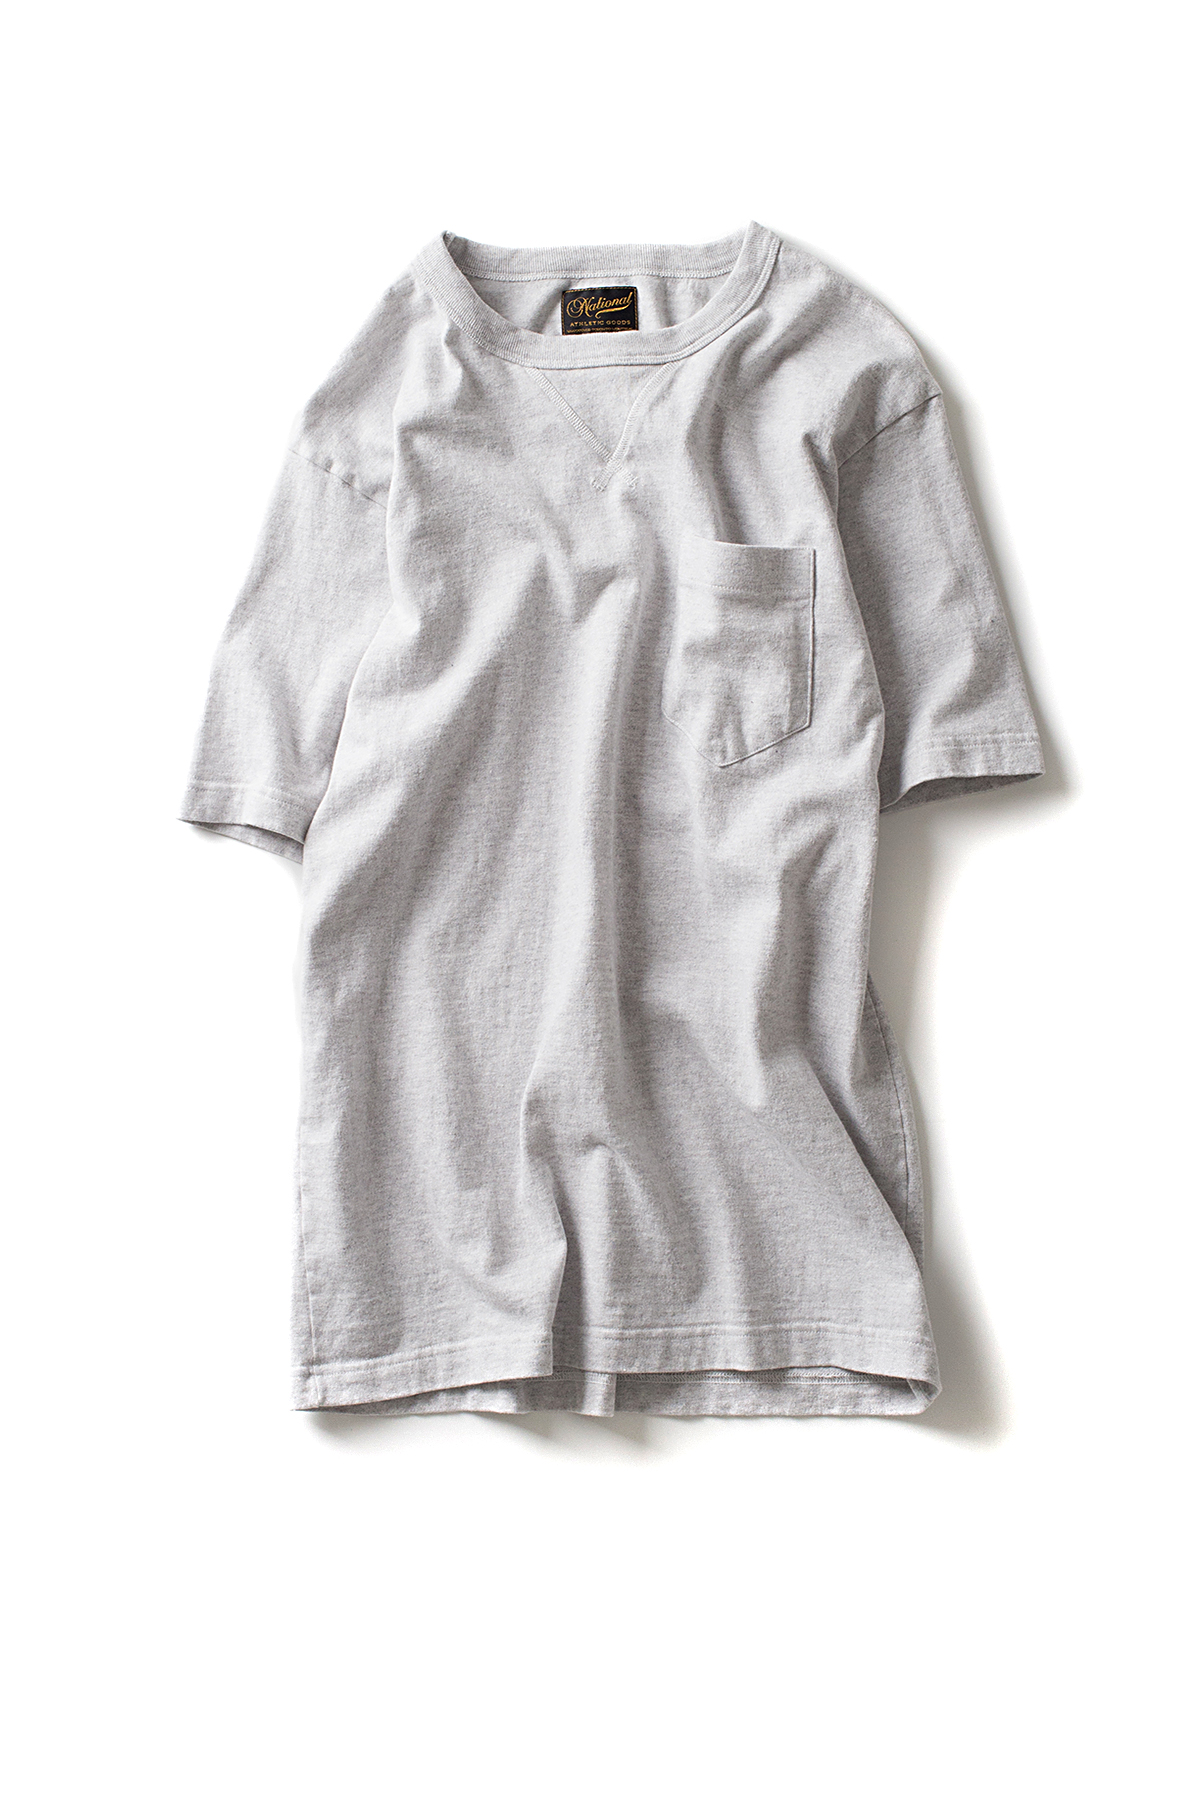 NAG : V Pocket Tee (White Heather)